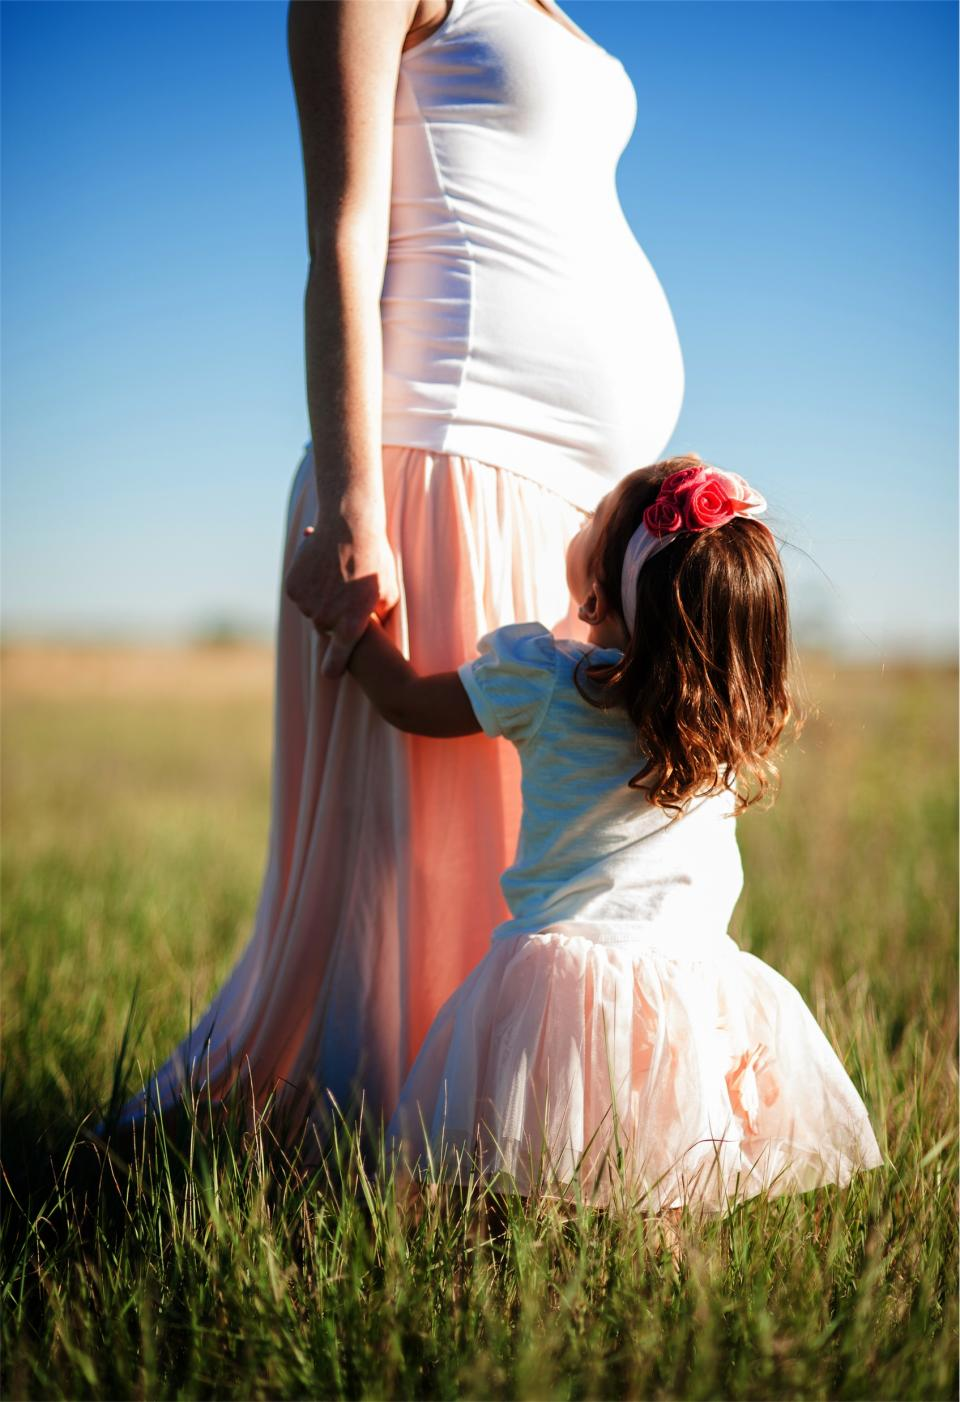 pregnant, mom, mother, woman, daughter, child, young, girl, dress, family, people, baby